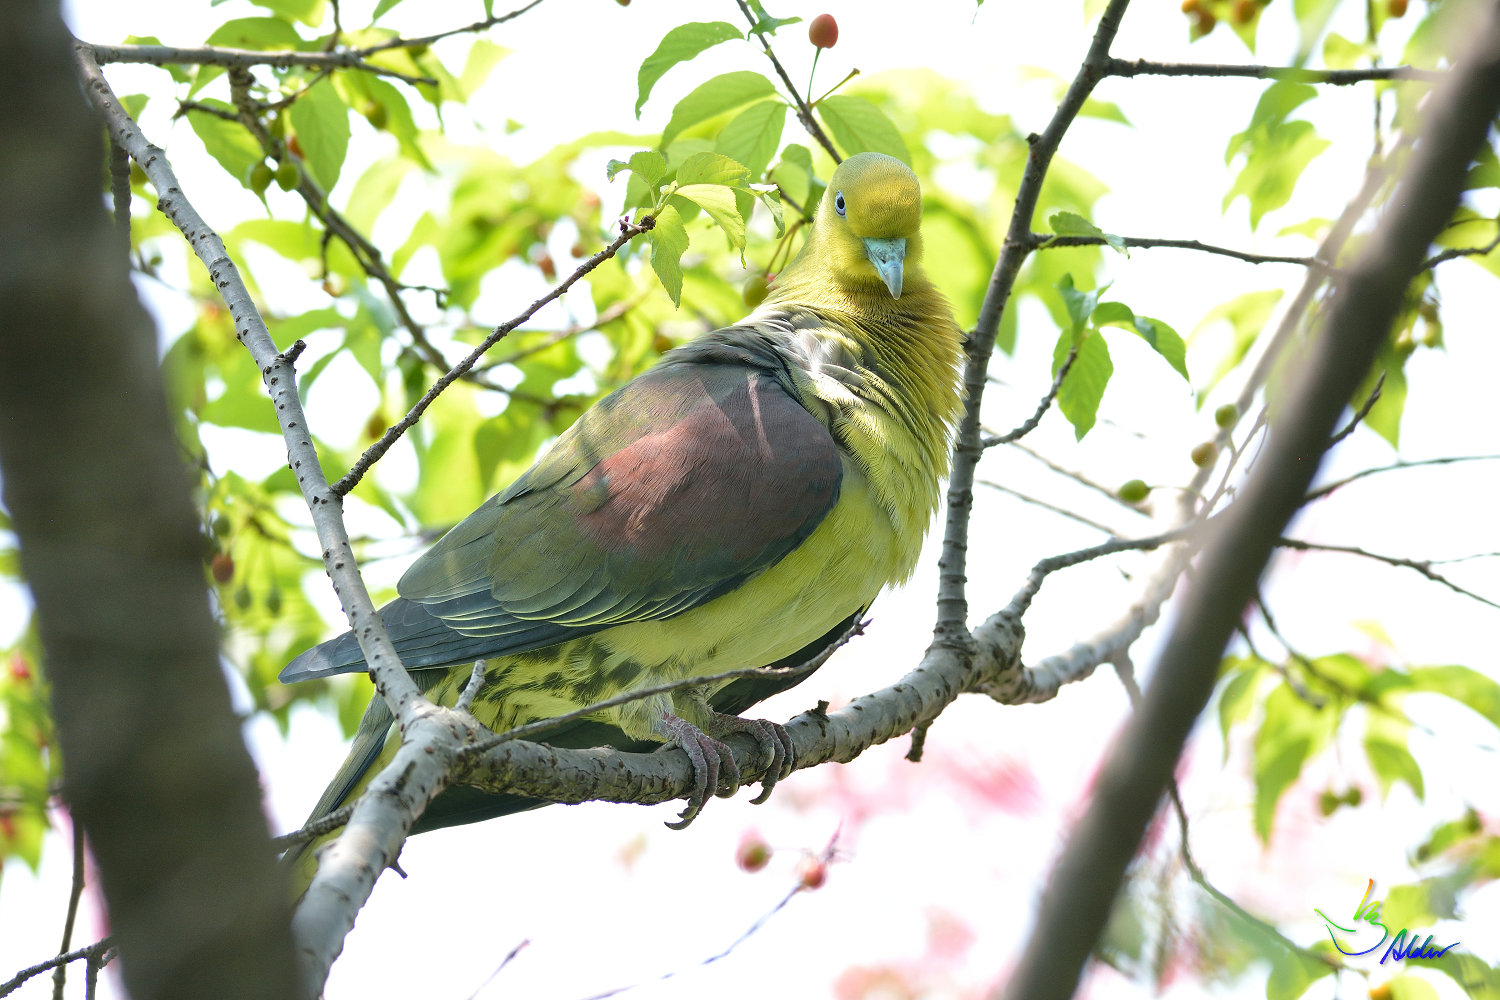 White-bellied_Green_Pigeon_5699